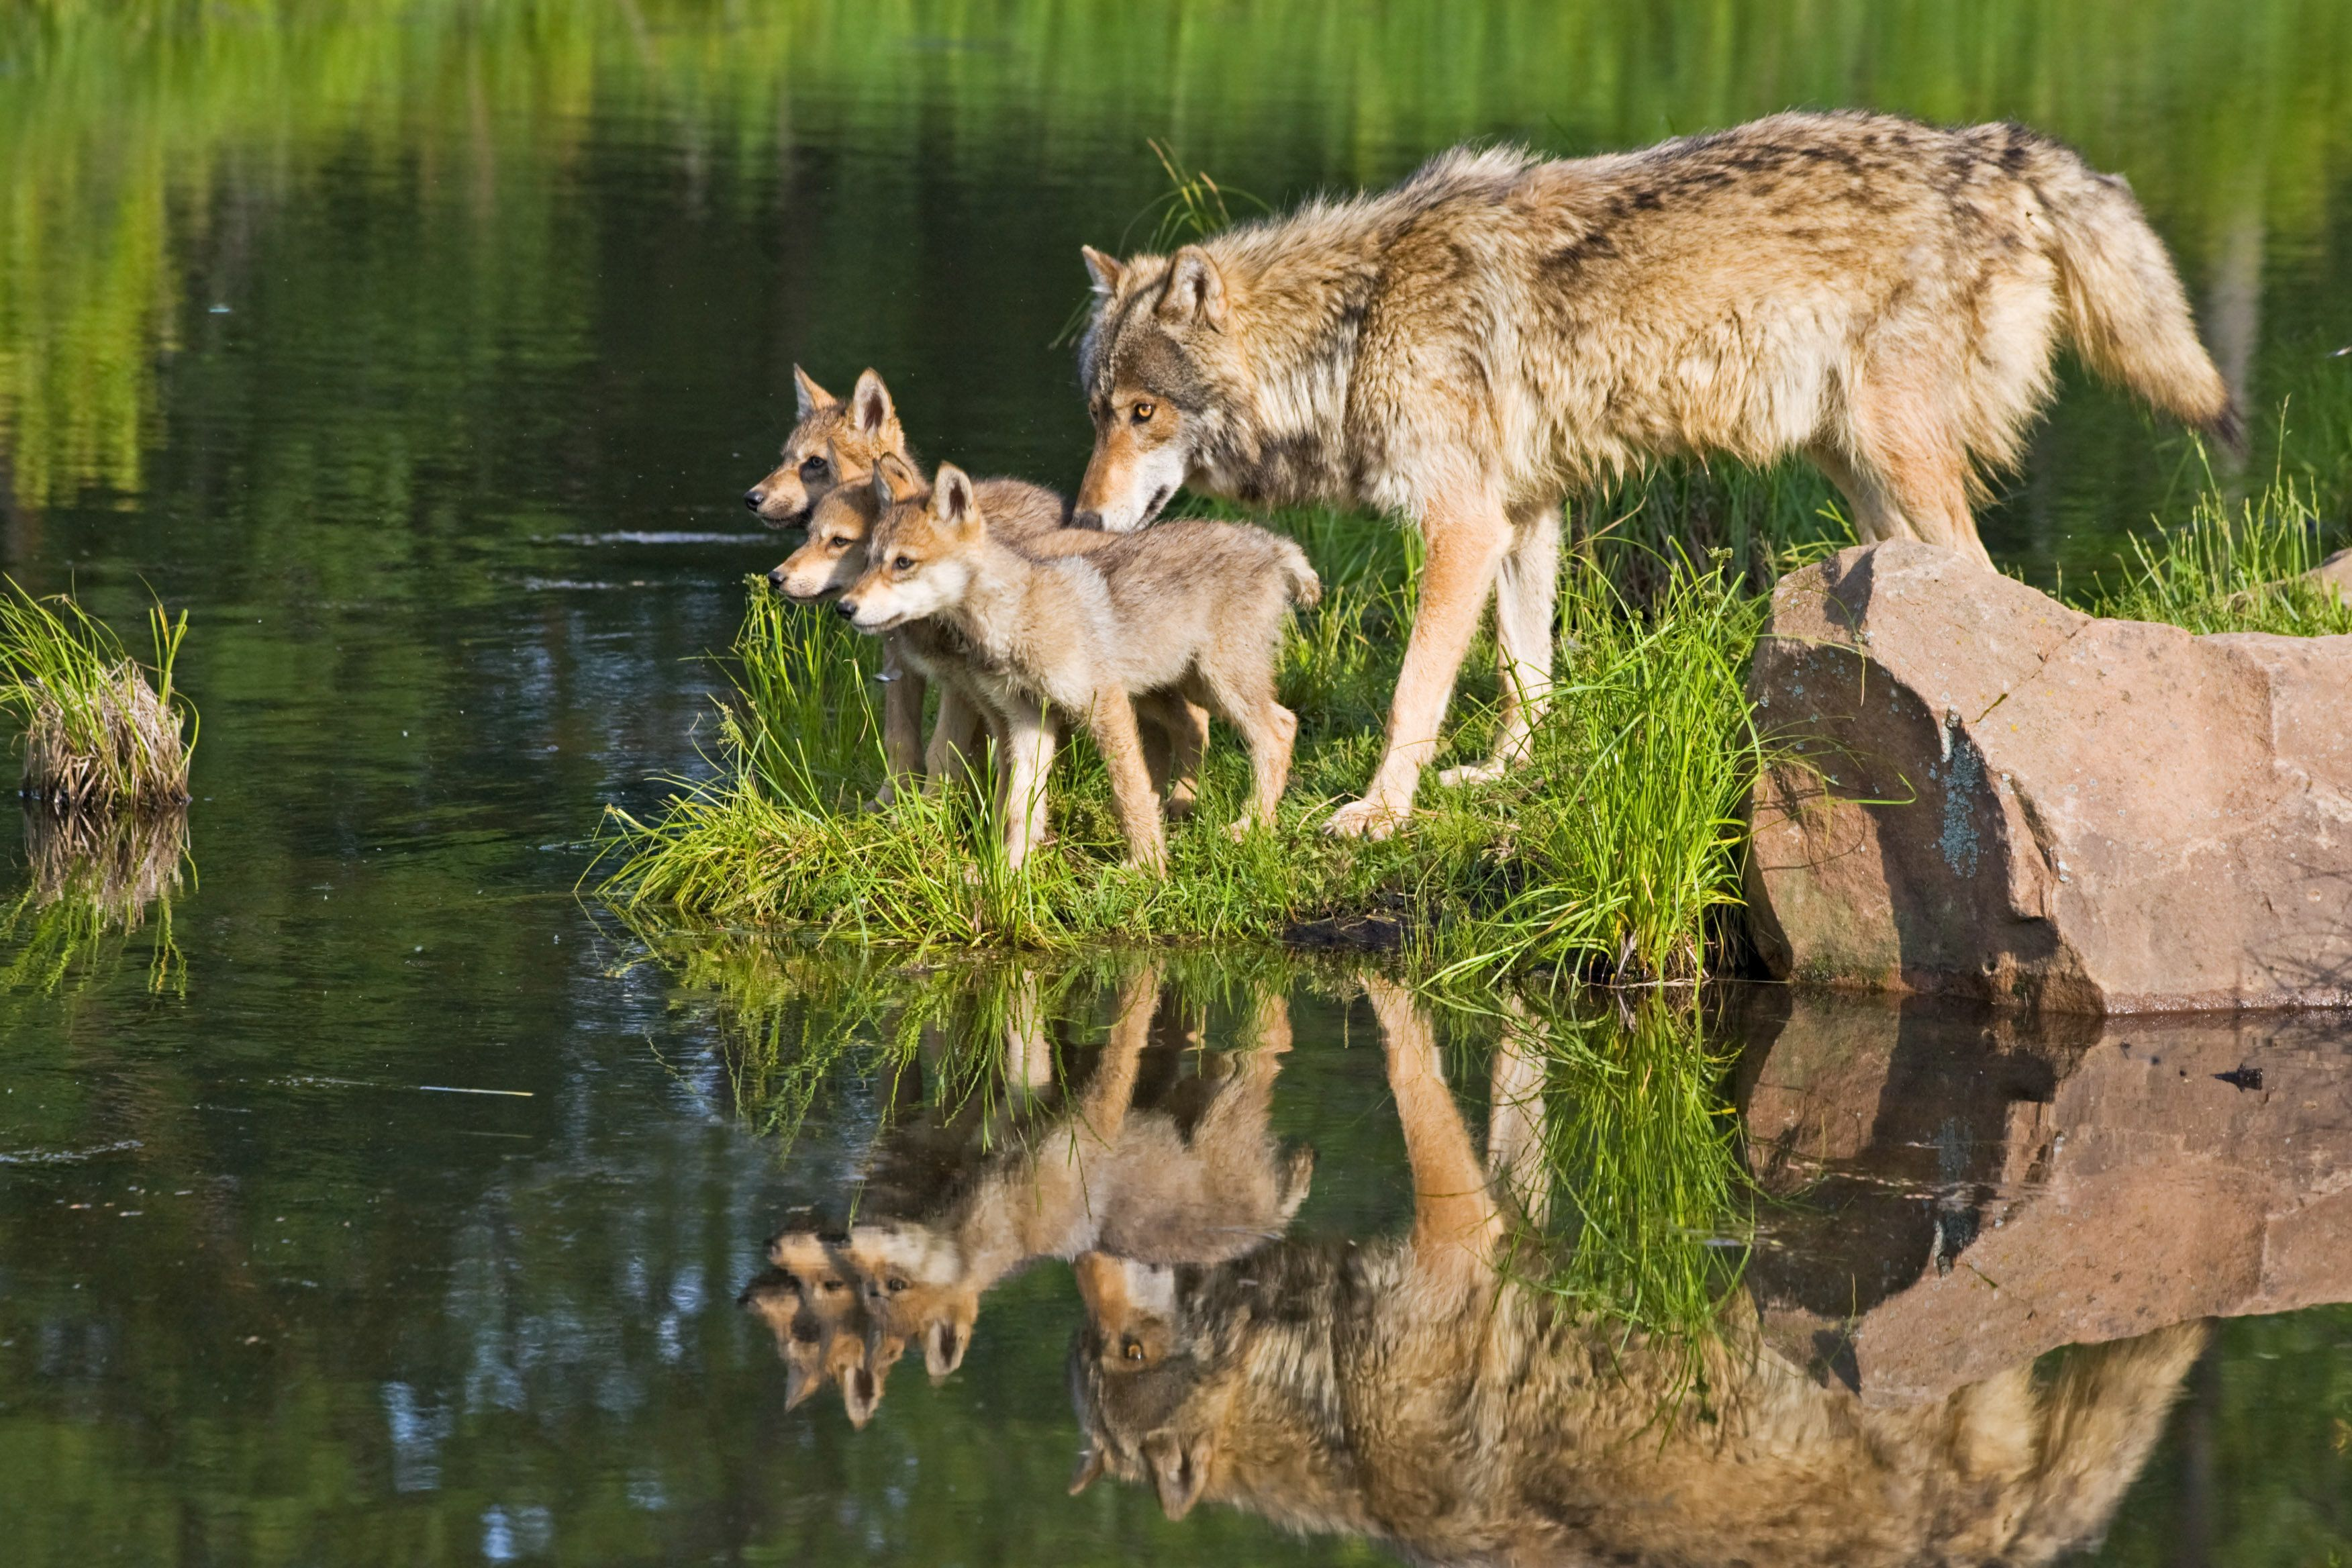 Wolf Family and Reflection, Minnesota, USA . (Photo by: Universal Education/Universal Images Group via Getty Images)